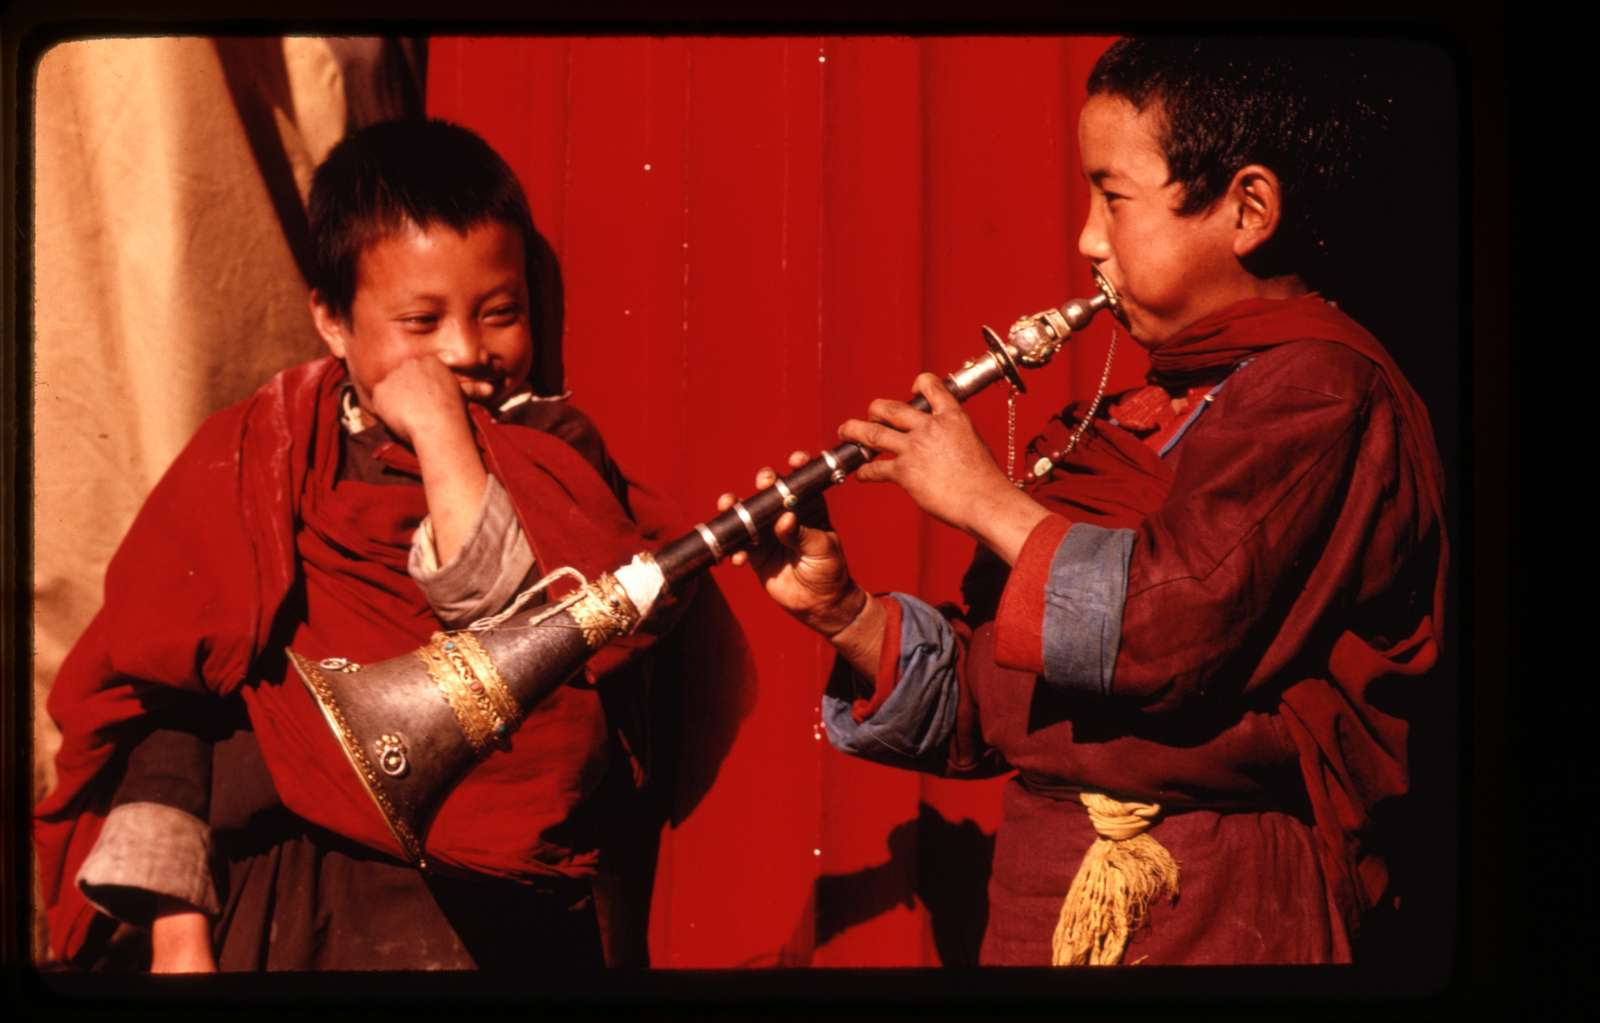 [Young lamas learn to play horns, Sikkim]